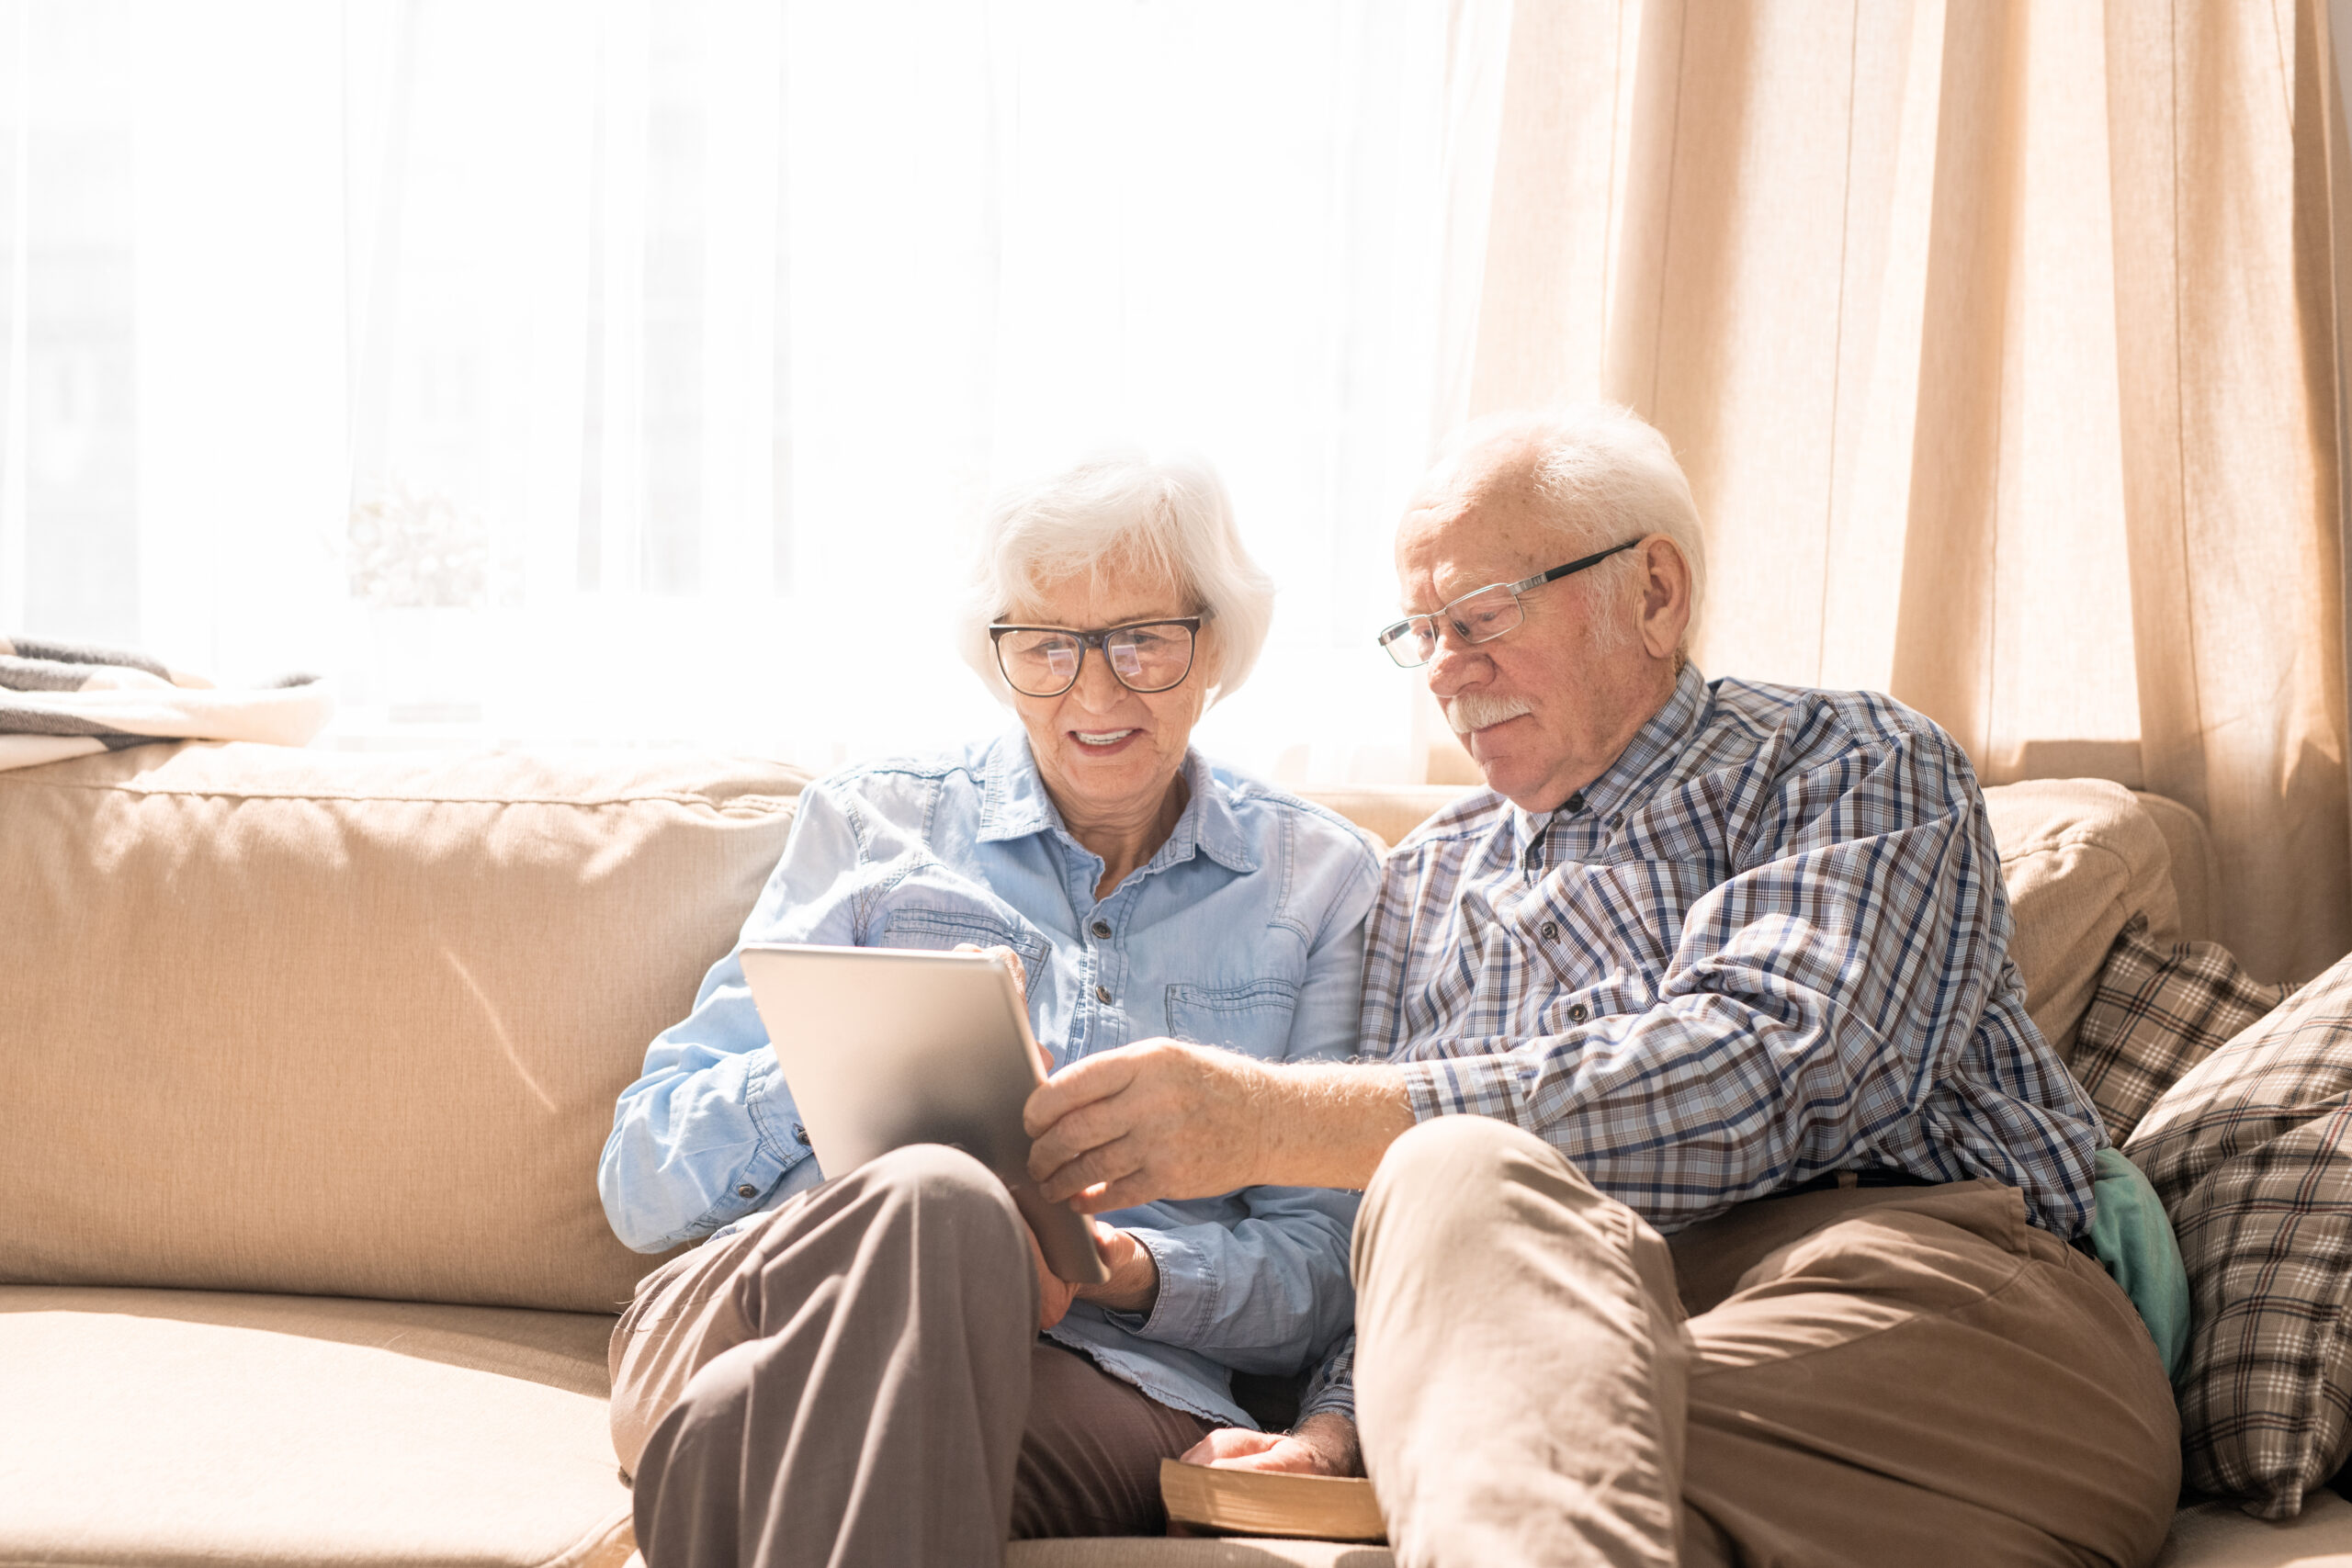 Portrait of modern senior couple using digital tablet sitting on couch at home in sunlight copy space